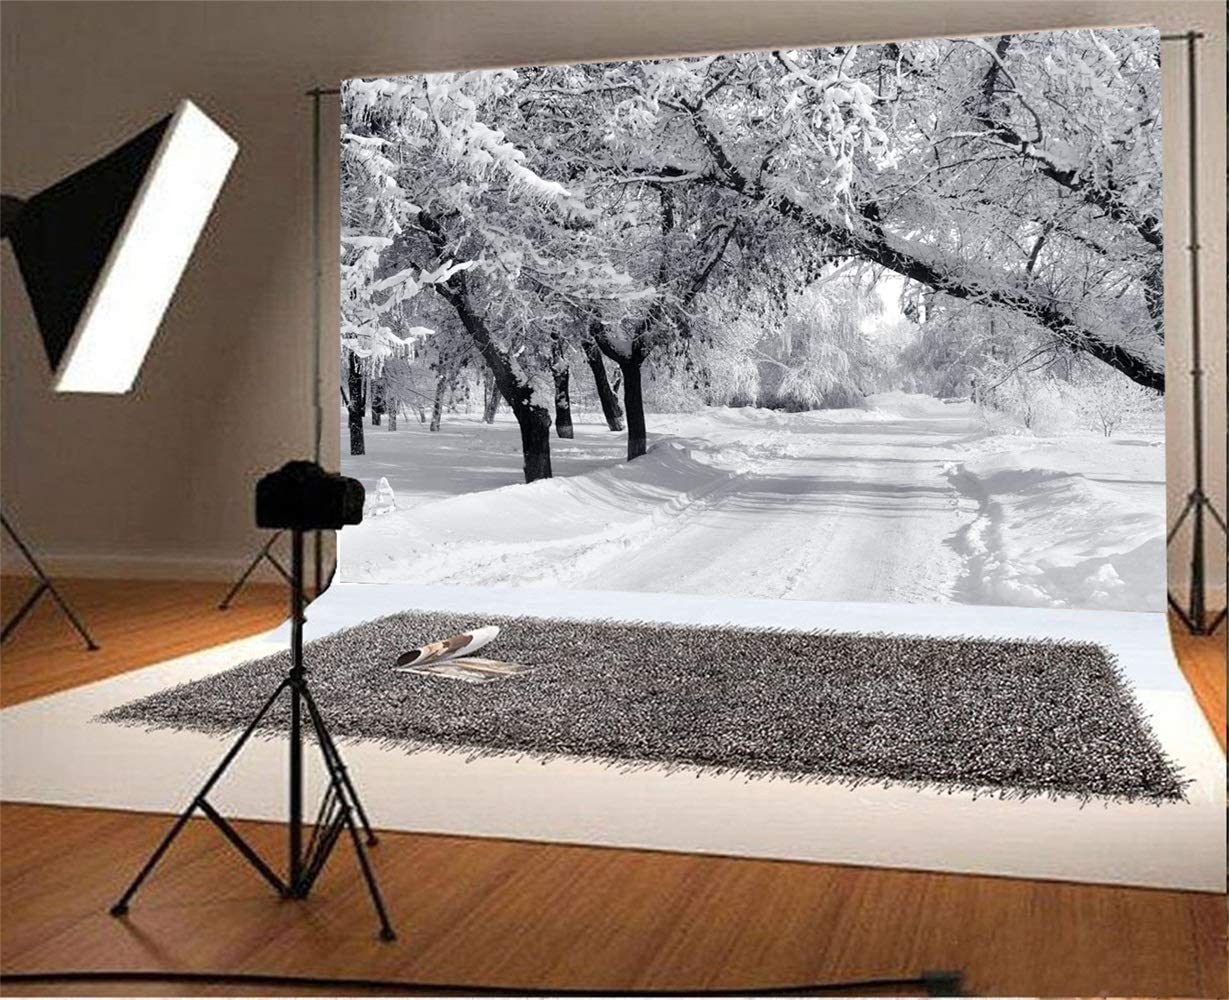 Winter Snowscape Backdrop 10x7ft Vinyl Black and White Photo of The Winter Snowy Park Road Frosty Trees Photography Background Nostalgia Style Scenic Kids Baby Shoot Poster